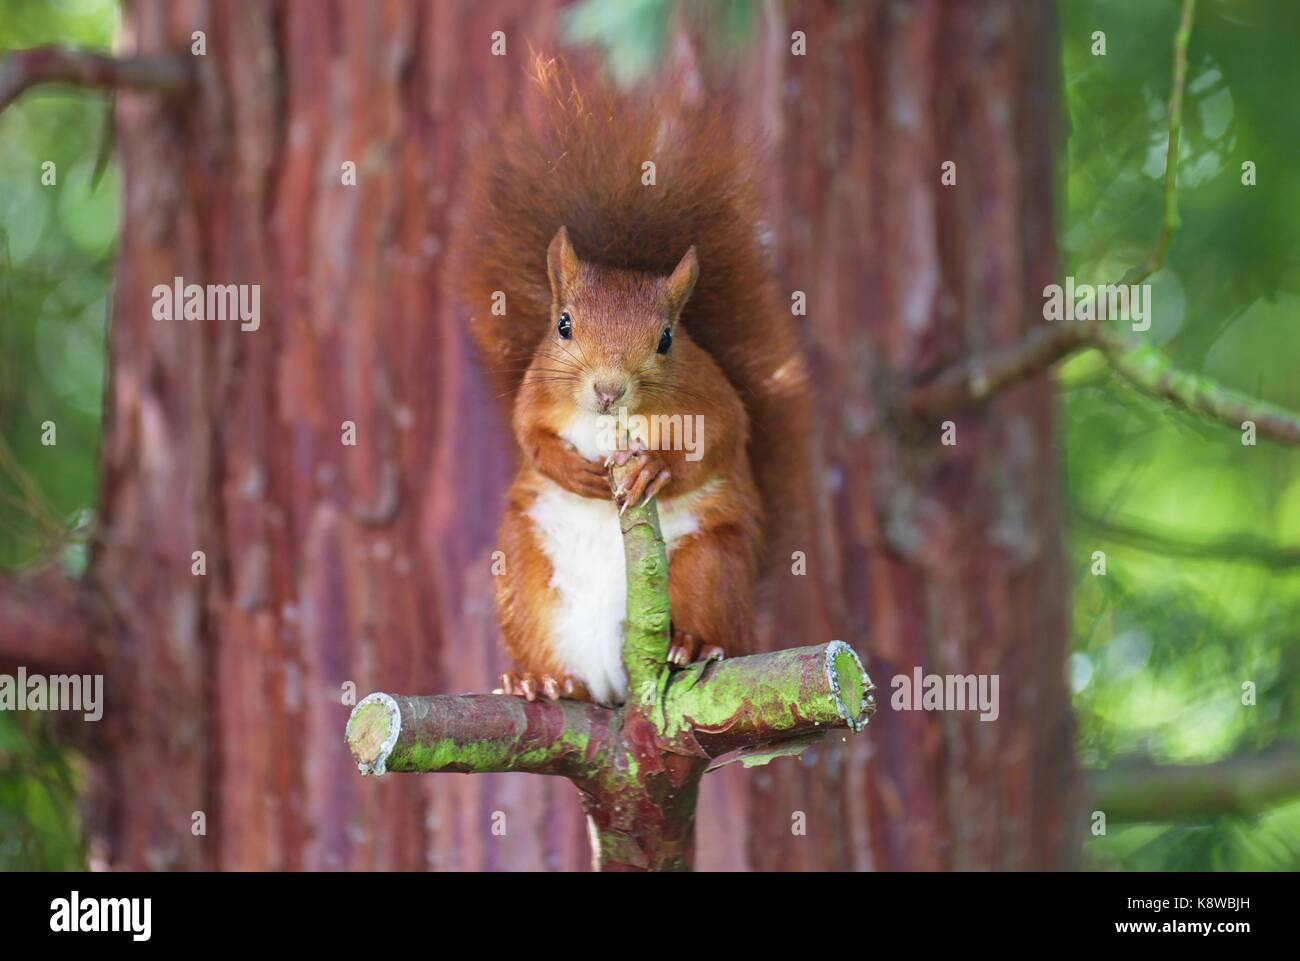 eurasian-red-squirrel-sitting-on-a-cross